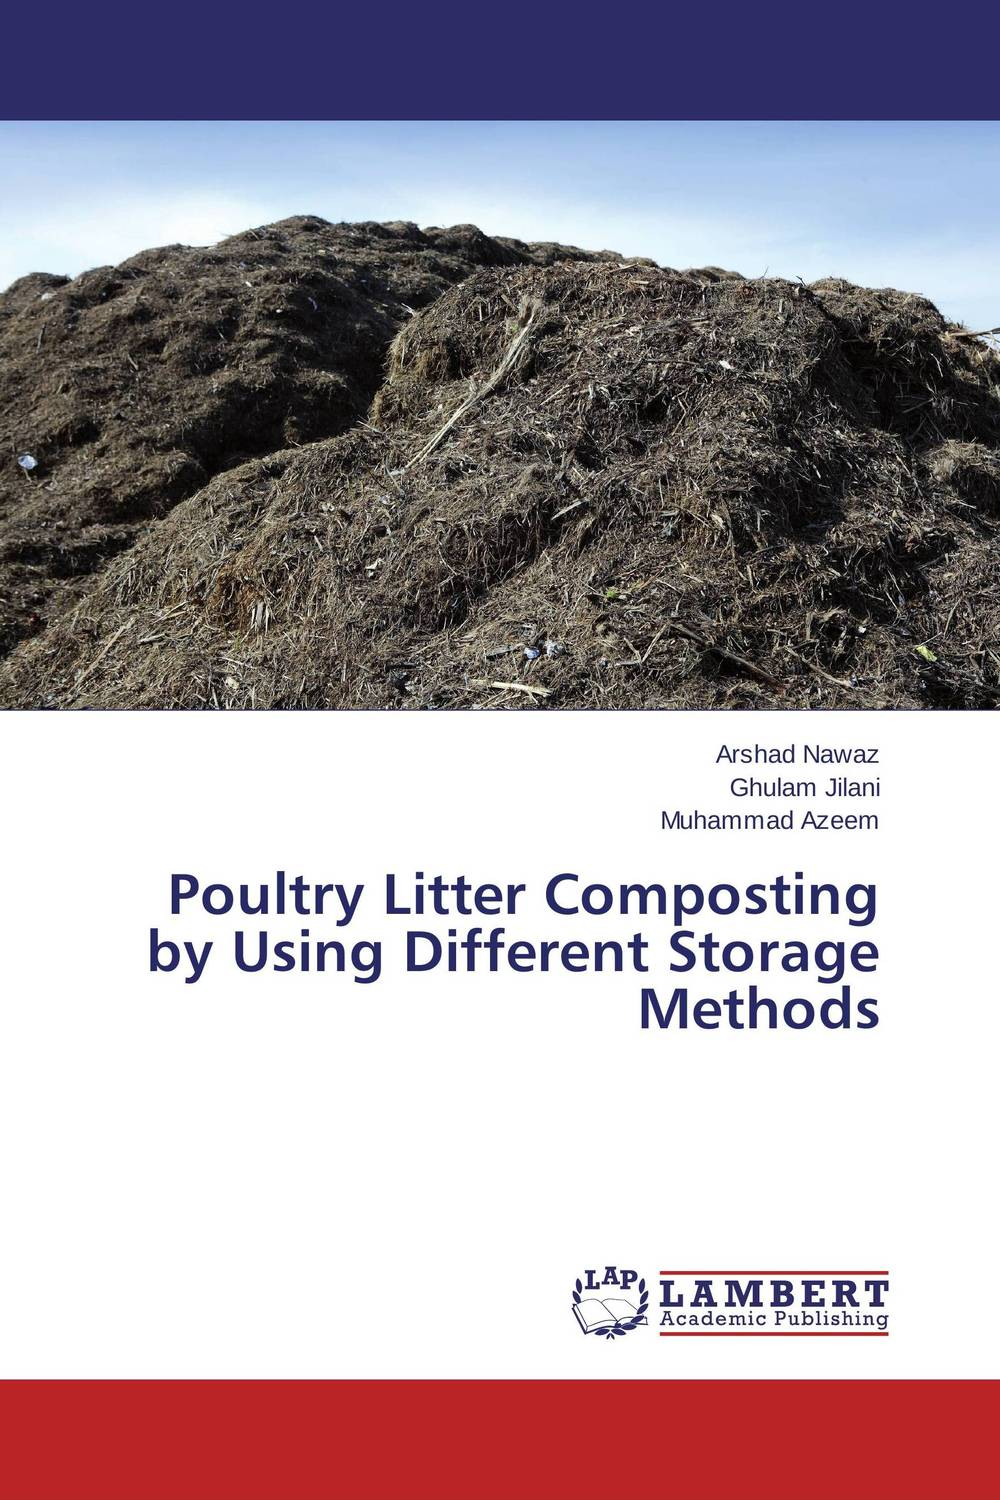 Poultry Litter Composting by Using Different Storage Methods estimating the quantity and quality of poultry litter in tamilnadu